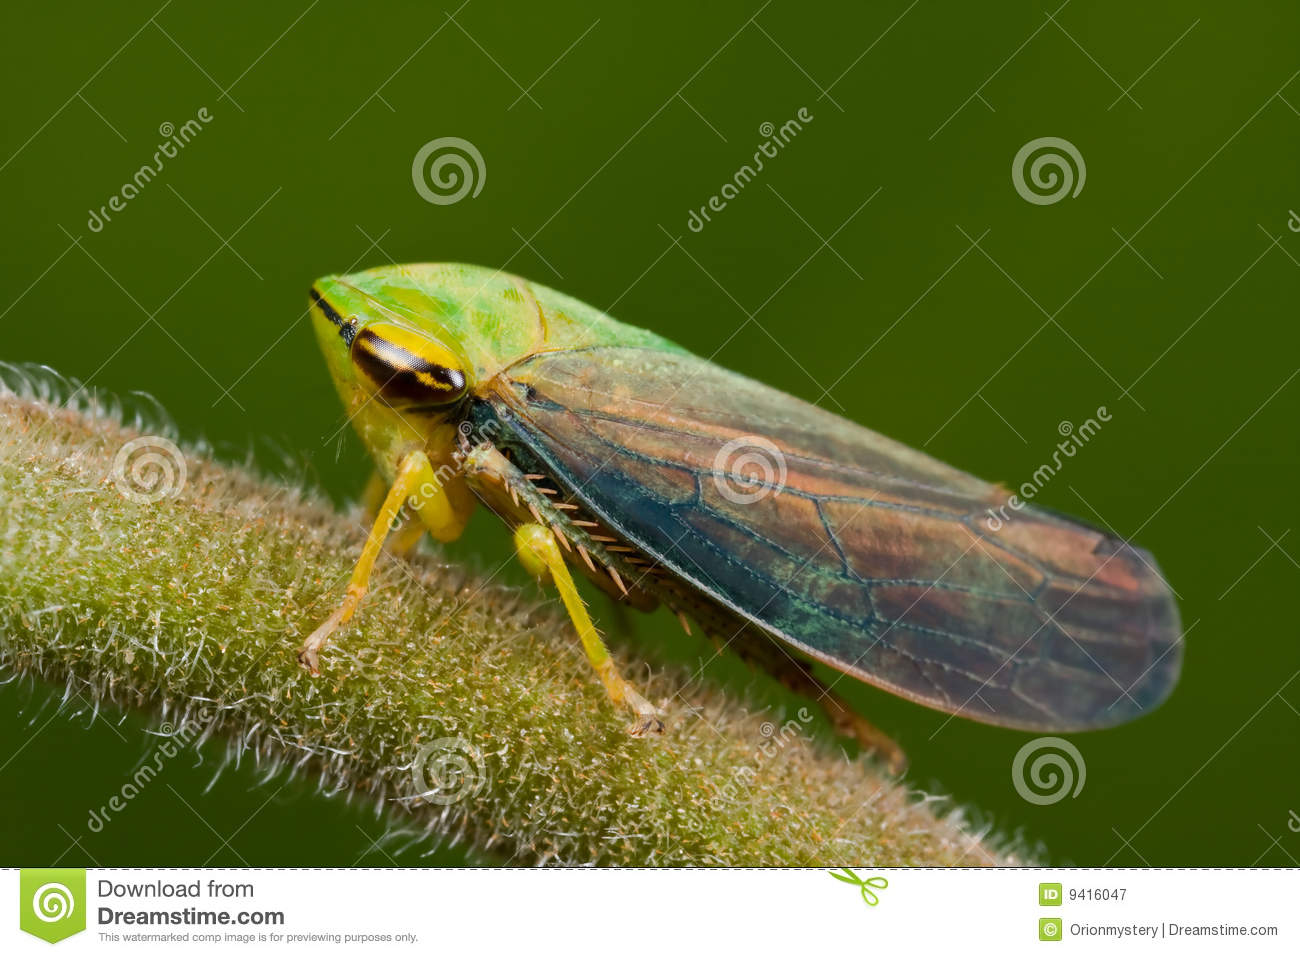 Leafhopper clipart #14, Download drawings